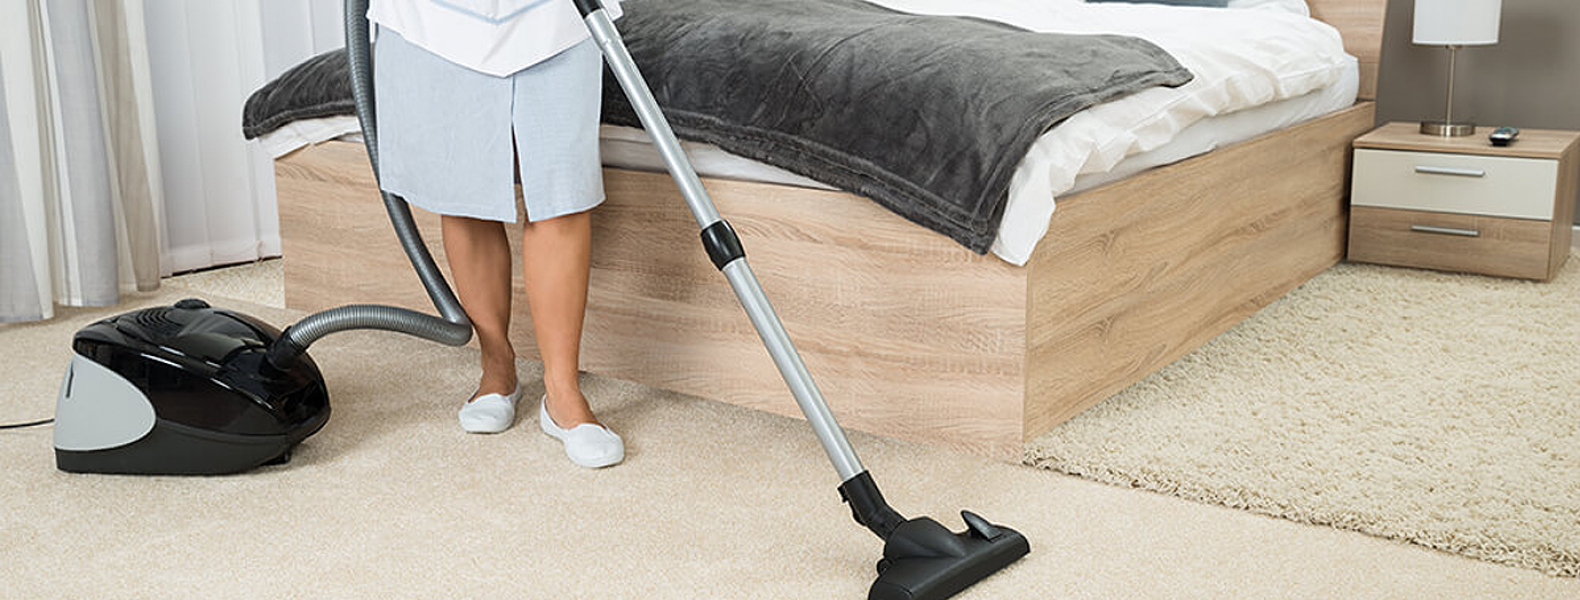 Make your Home Healthy, Fresh and Safe with Carpet Cleaning Spokane